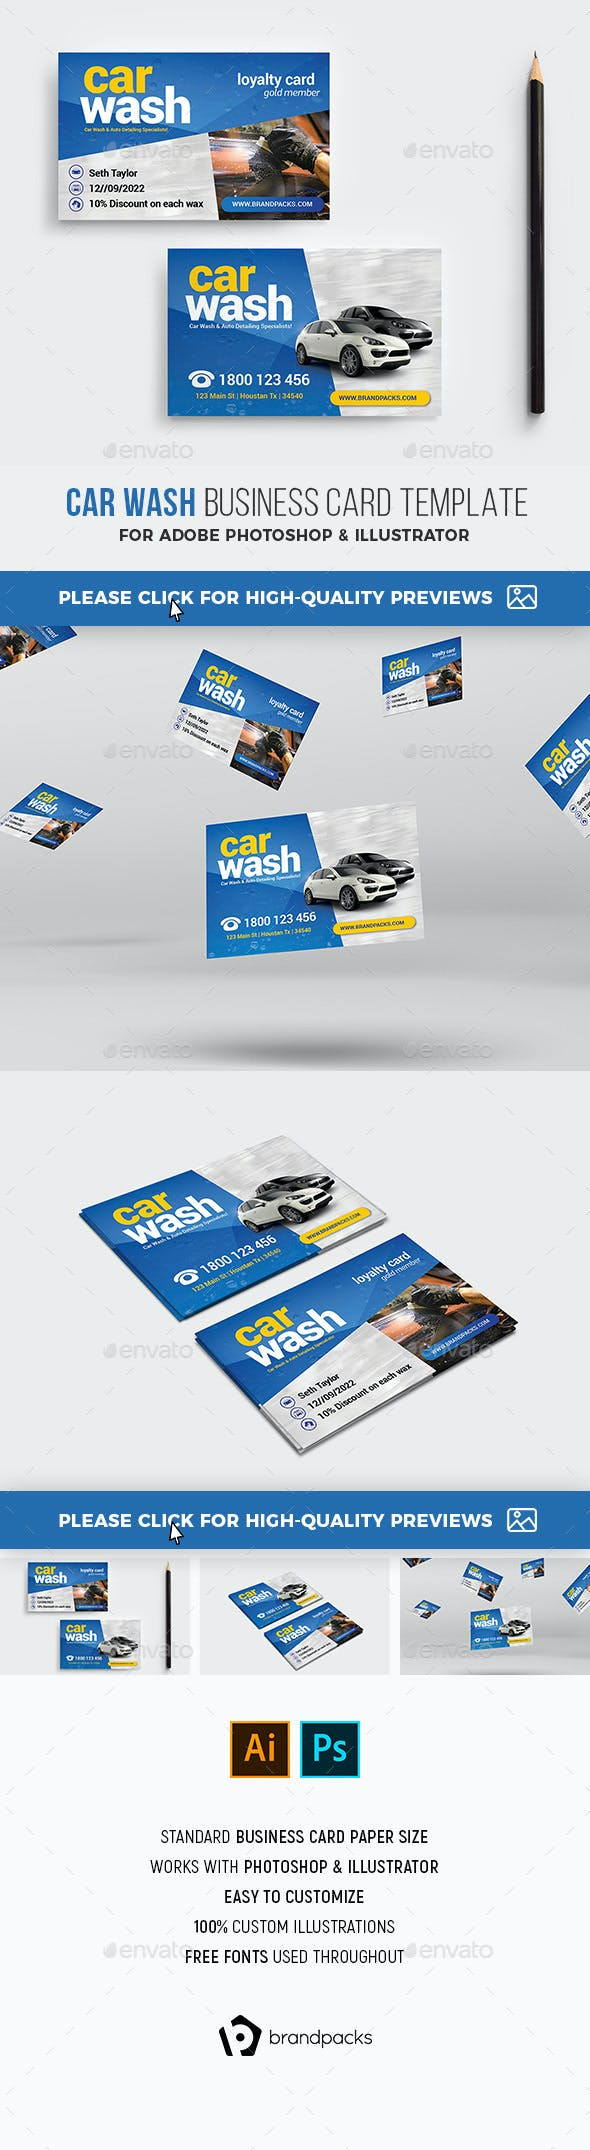 Car Wash Business Loyalty Card Industry Specific Cards